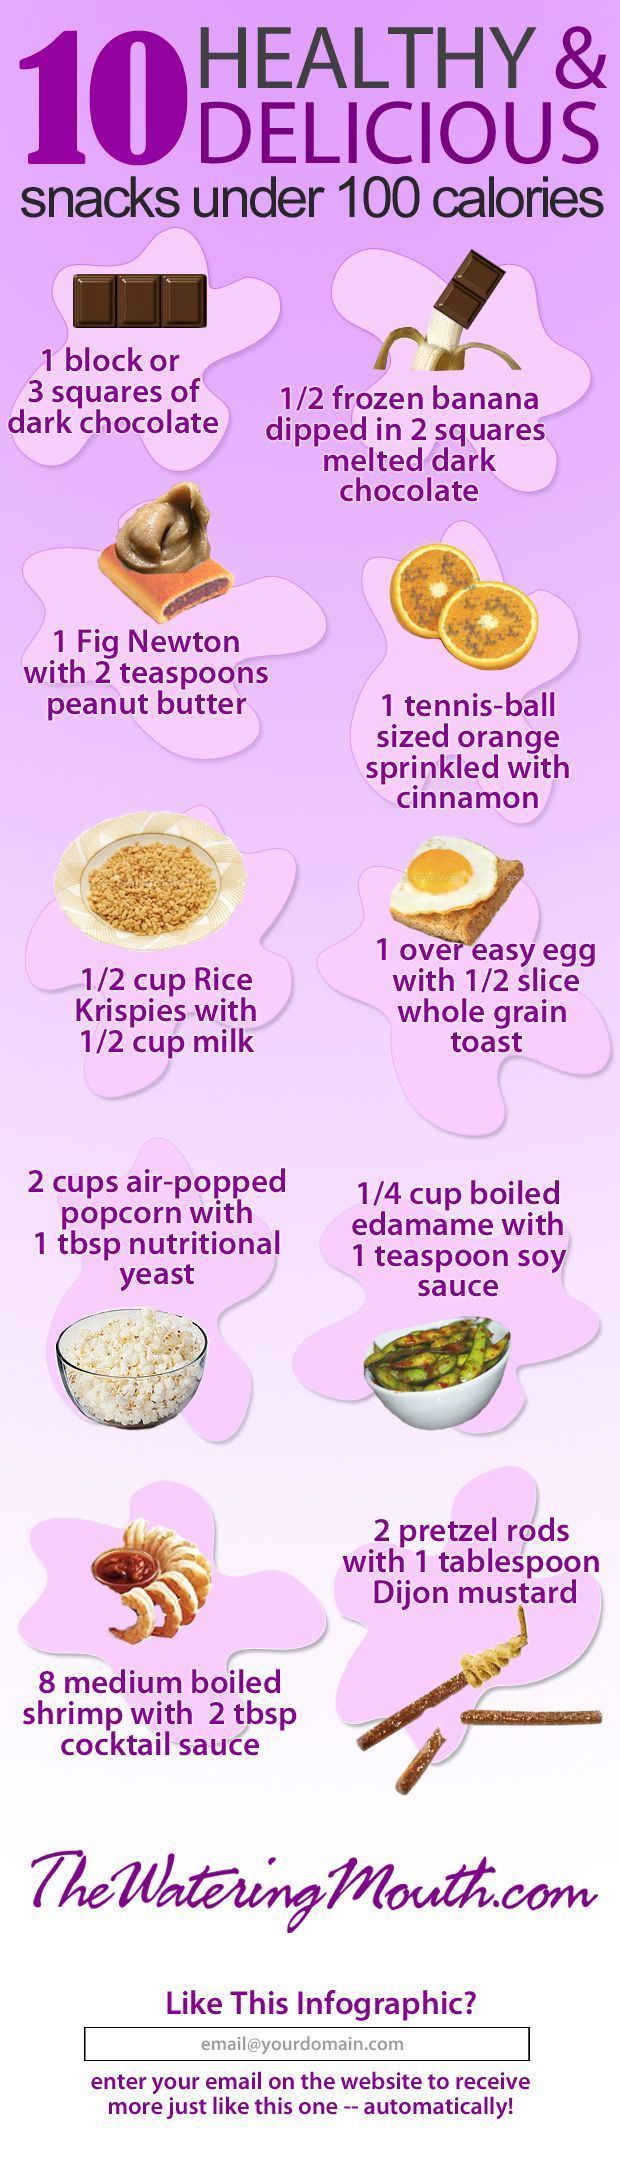 10 Healthy & Delicious Snacks Under 100 Calories! #infographic  http://thewateringmouth.com/10-healthy-snacks-under-100-calories-infographic/ #Under100calories #100calories